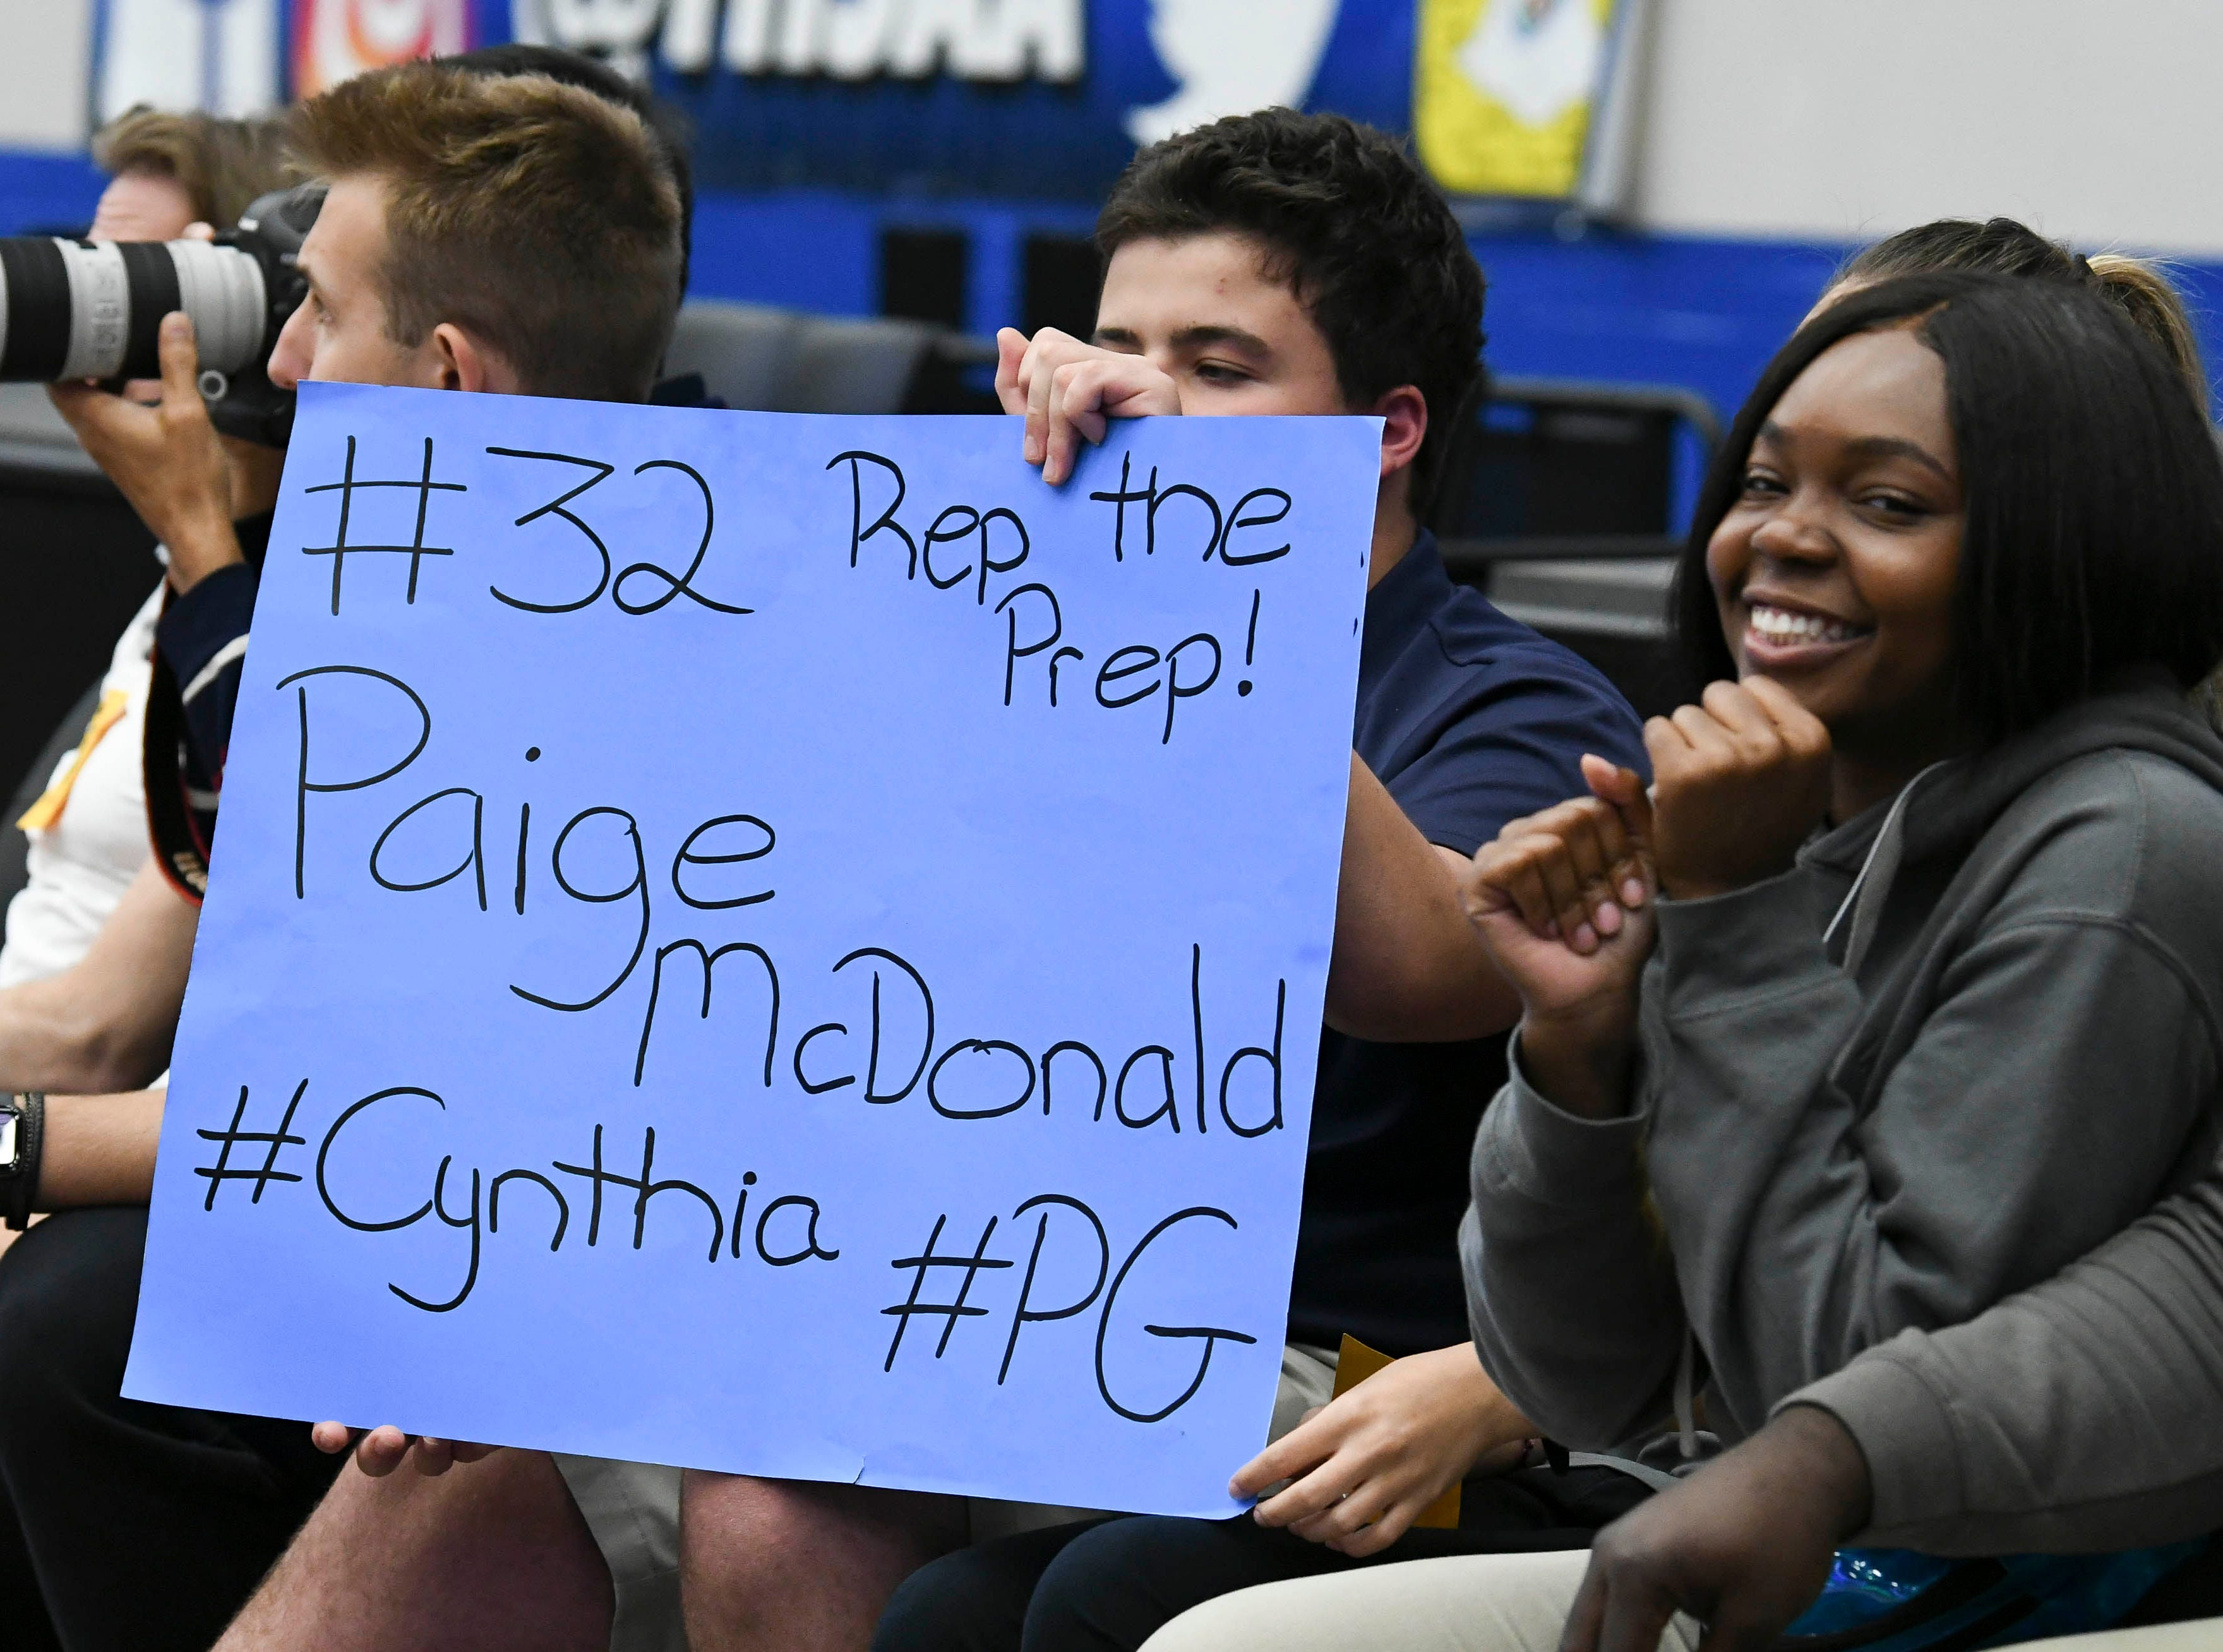 Florida Prep fans brought their signs of support to Tuesday's Class 2A state championship game.